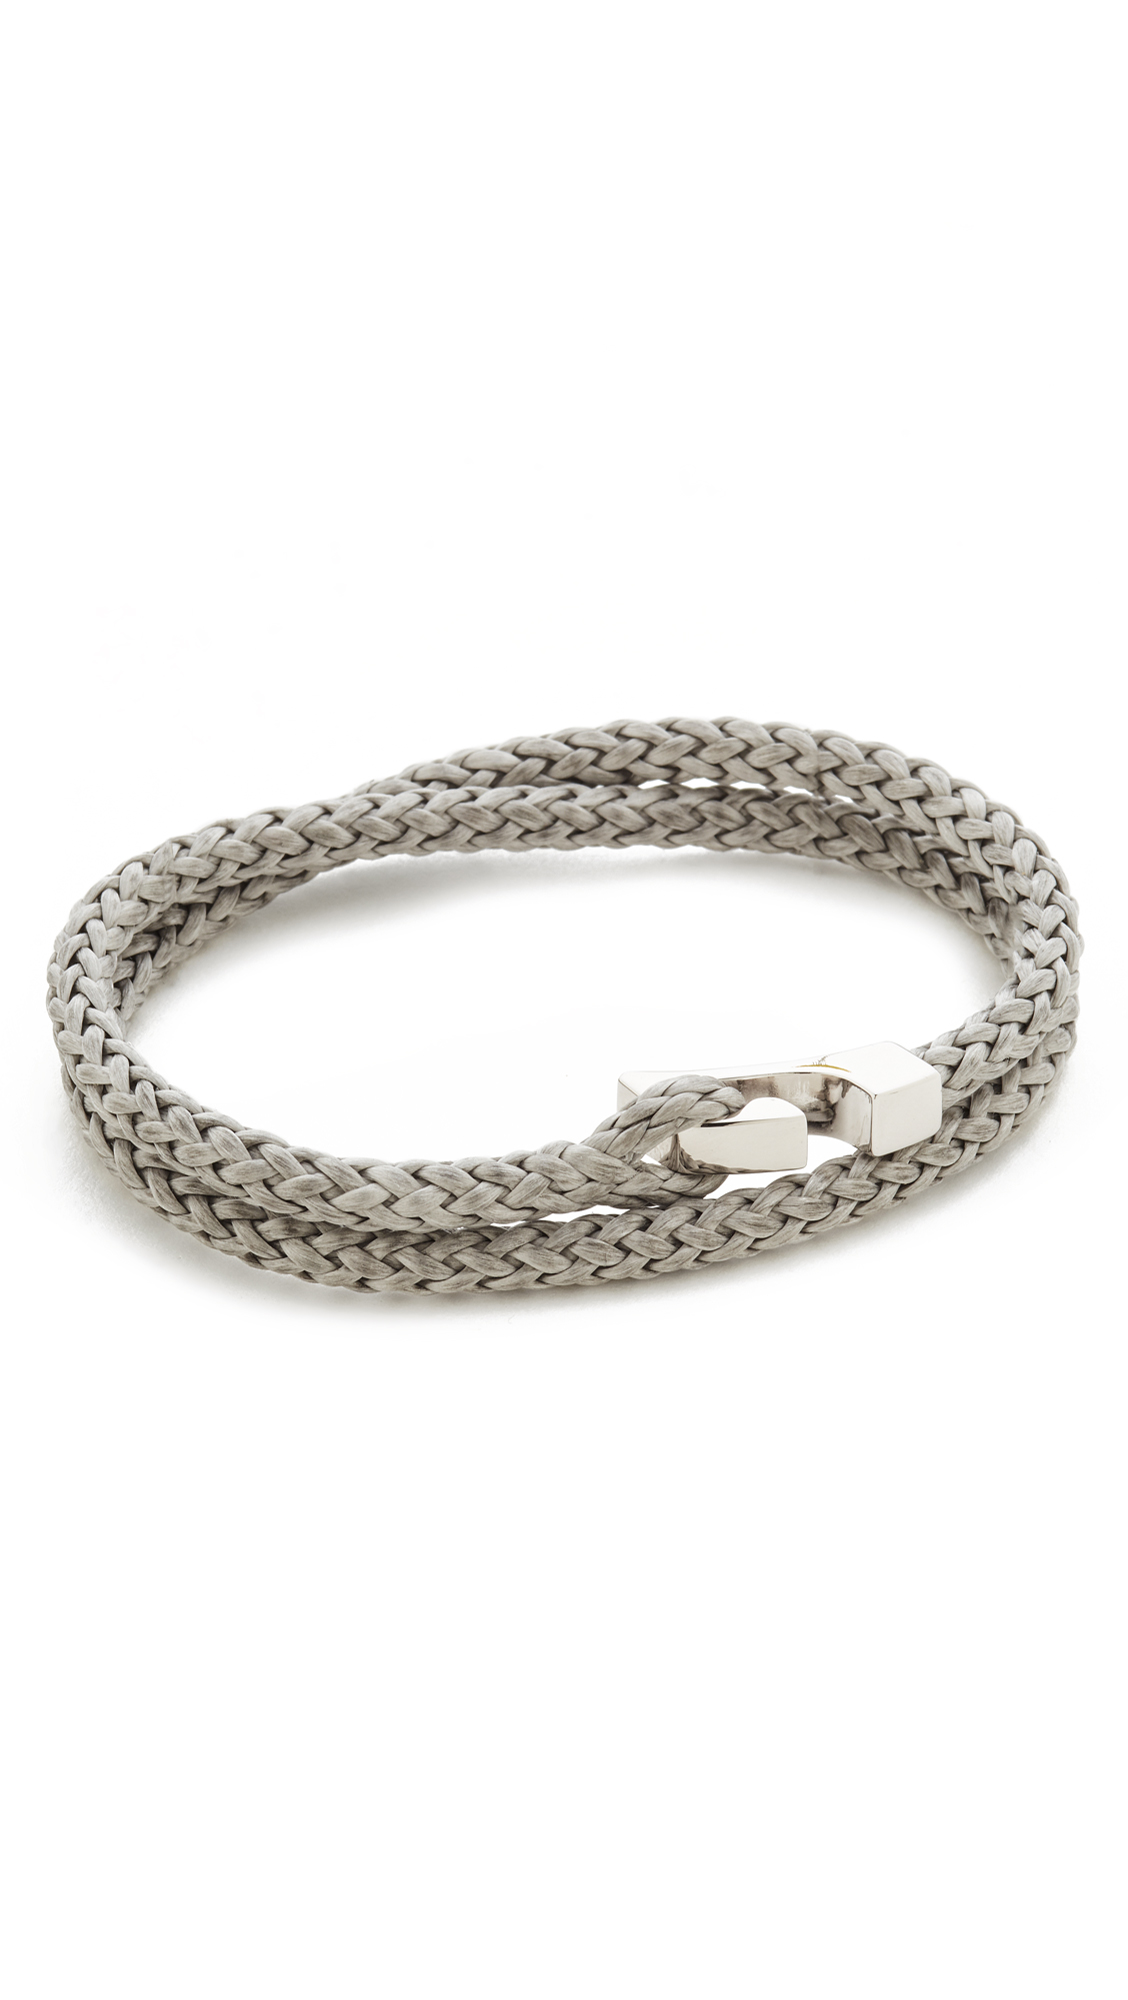 Miansai Sterling Silver Ipsum Wrap Bracelet In Silver/Grey